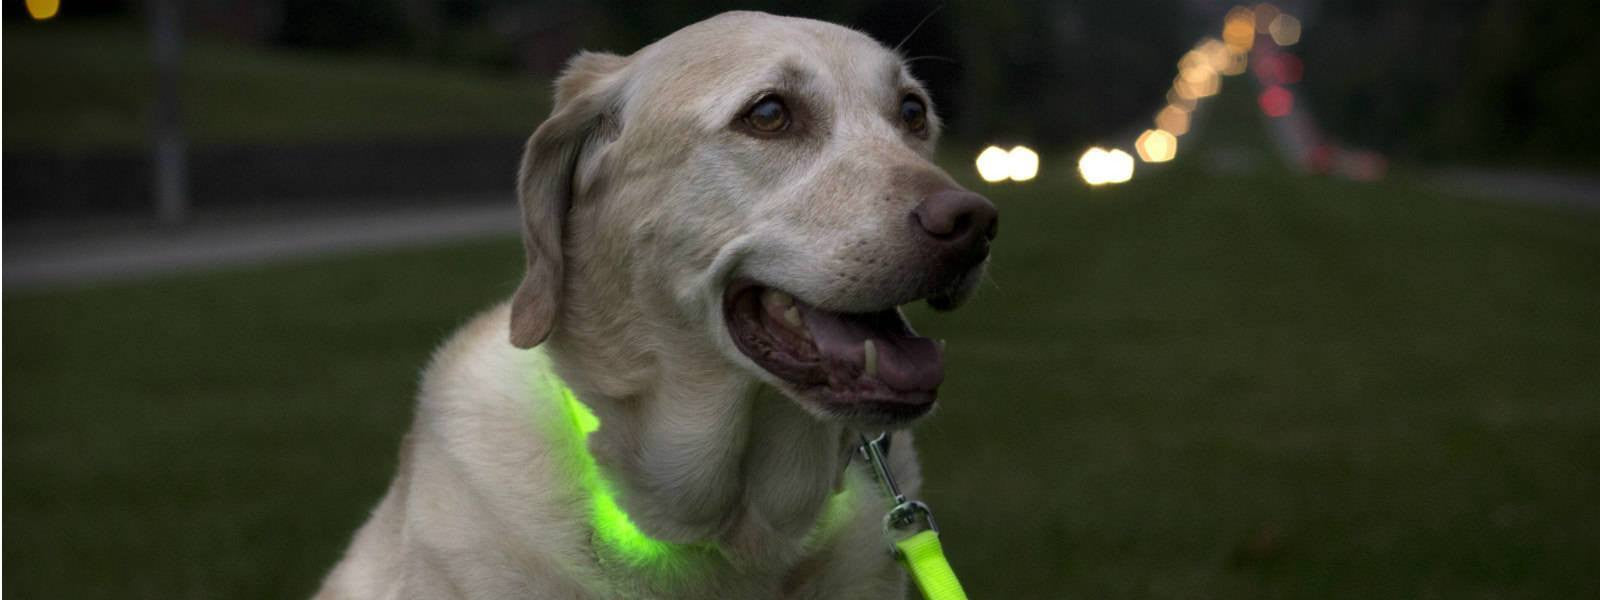 led dog collar saves dog from getting hit by cars